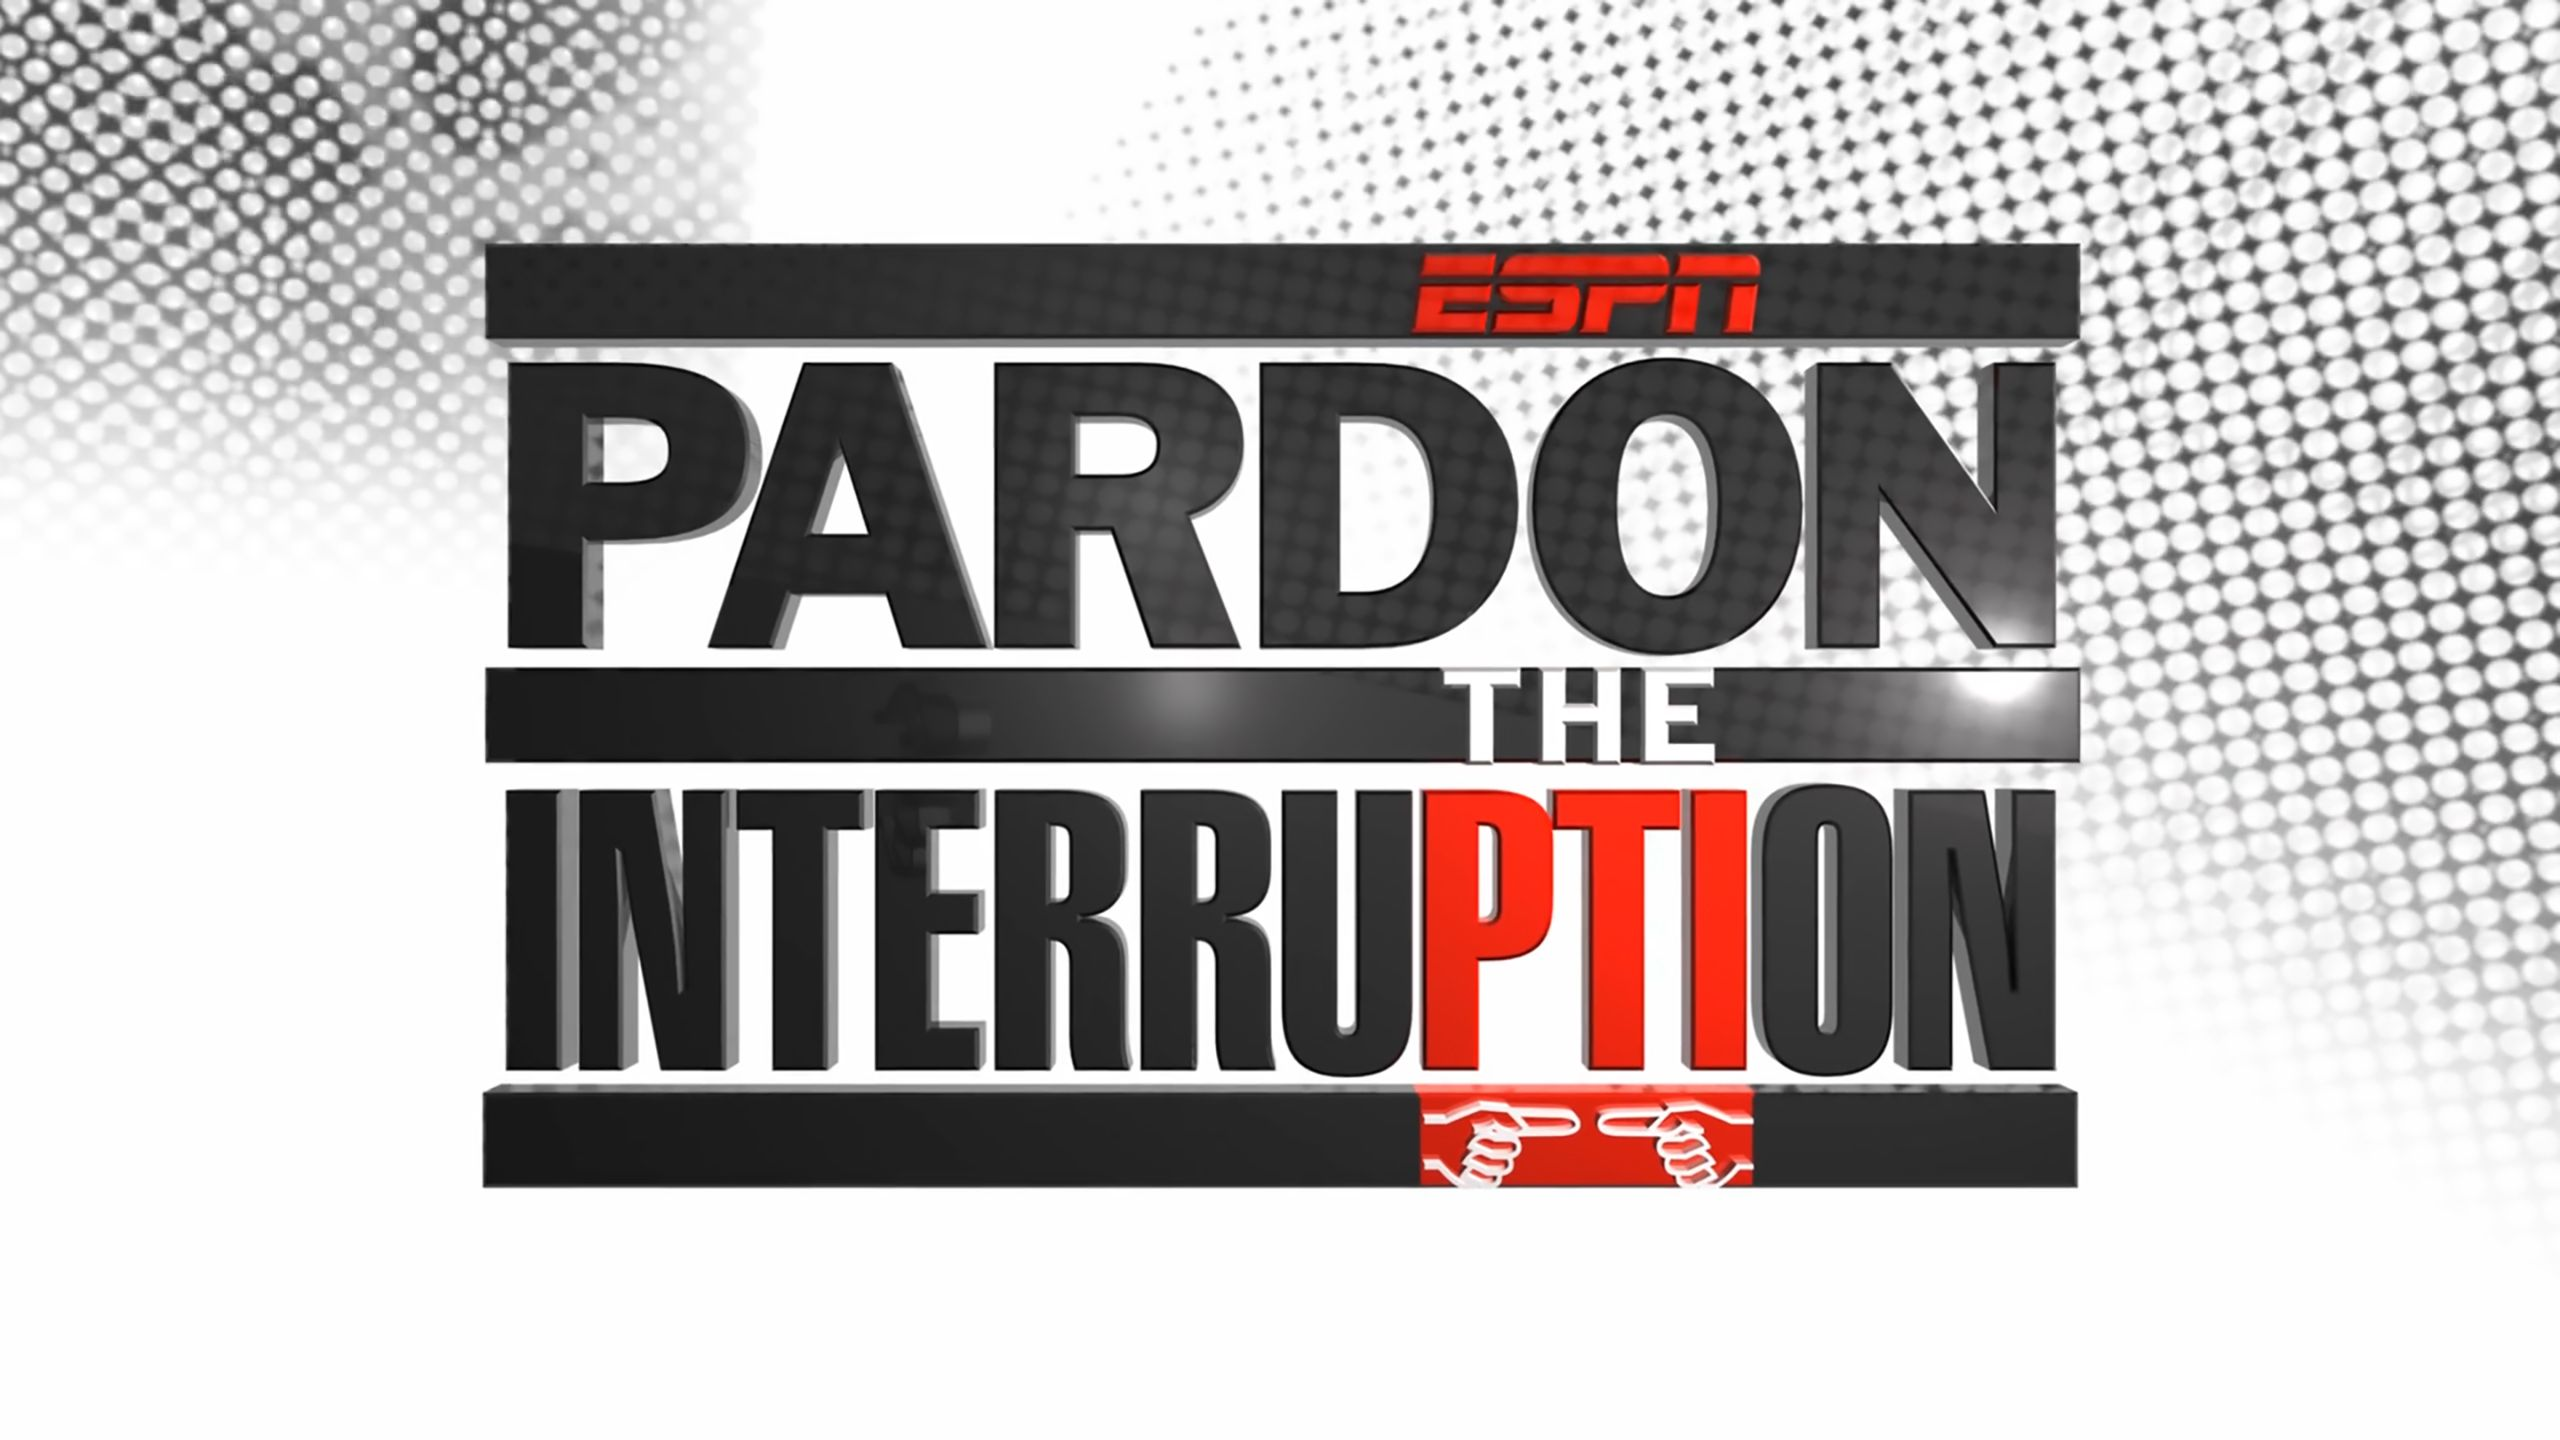 Fri, 2/16 - Pardon The Interruption